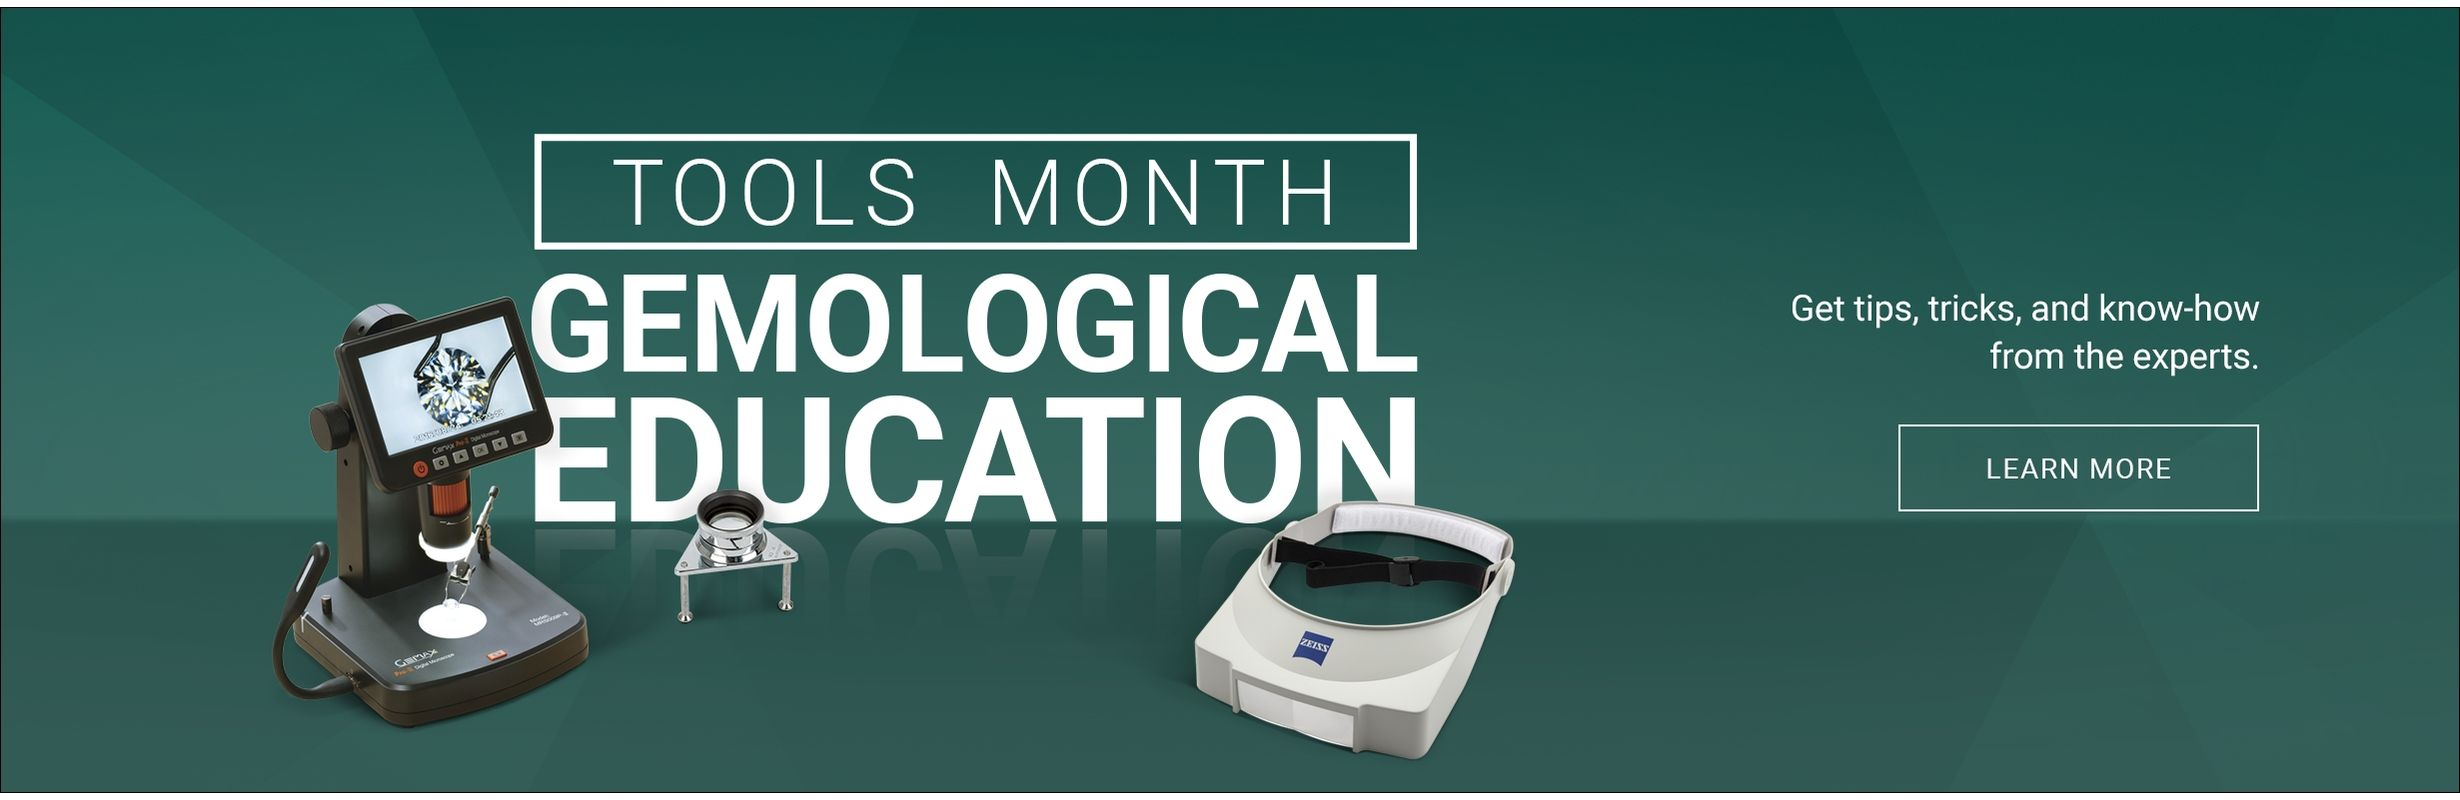 Tools Month - Gemological Education